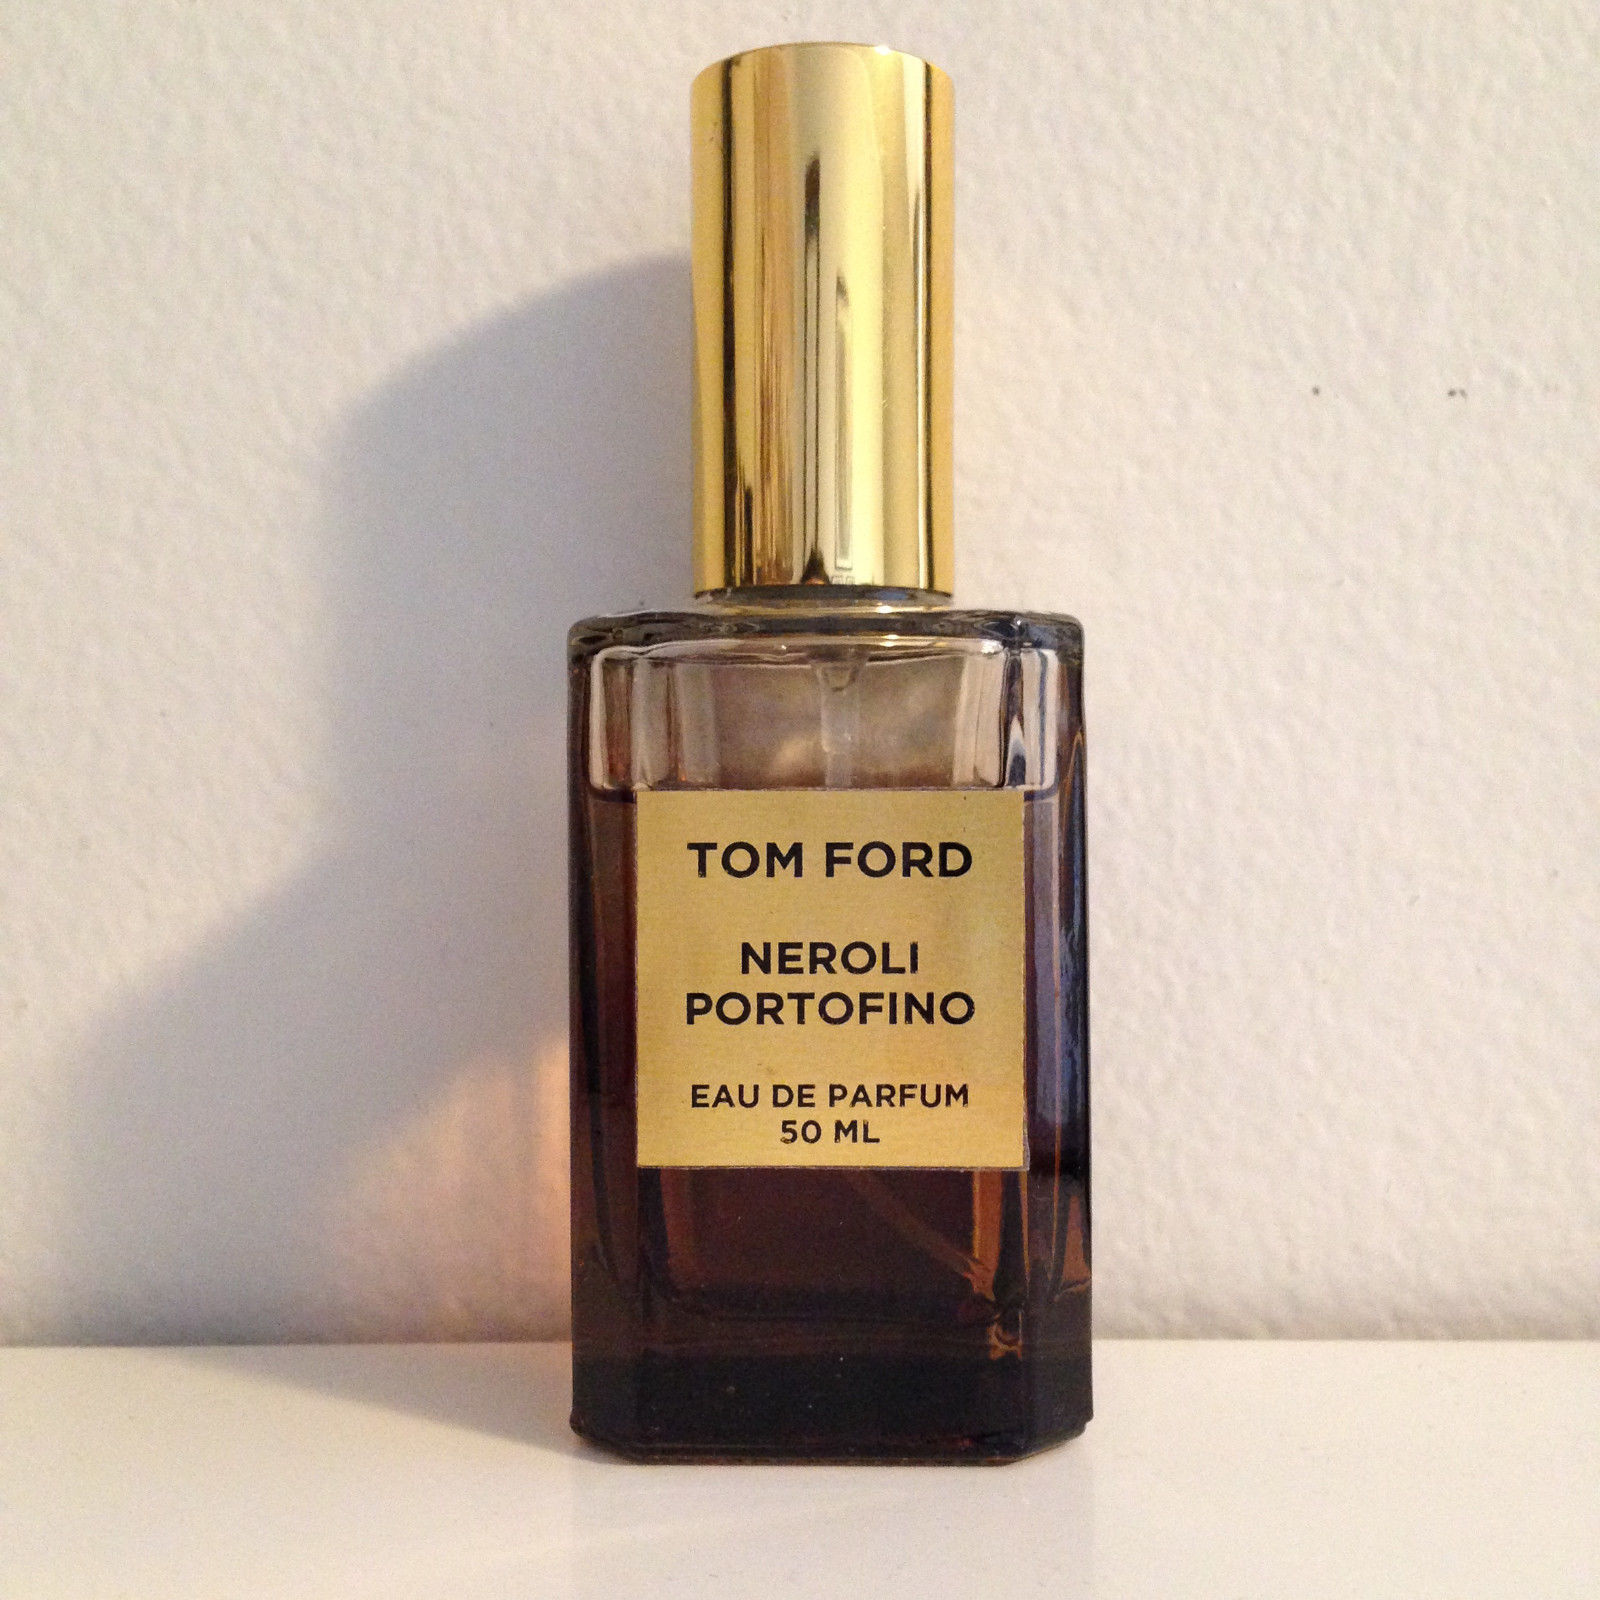 tom ford neroli portofino eau de parfum edp 50ml. Black Bedroom Furniture Sets. Home Design Ideas